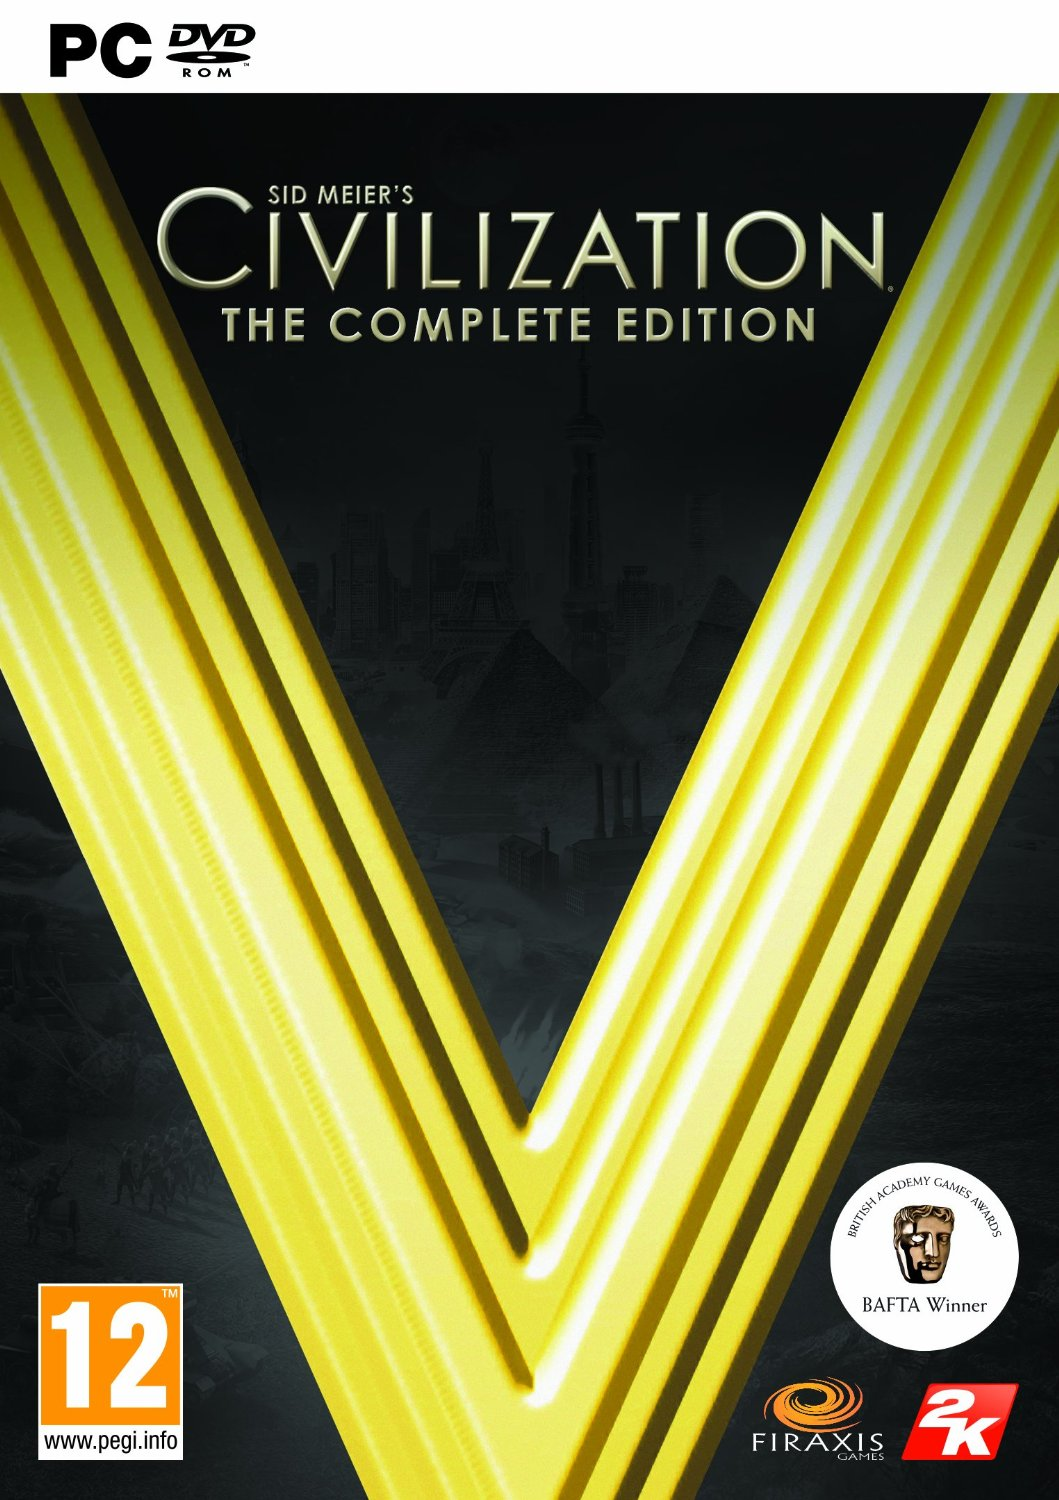 Sid Meier's Civilization 5 - The Complete Edition